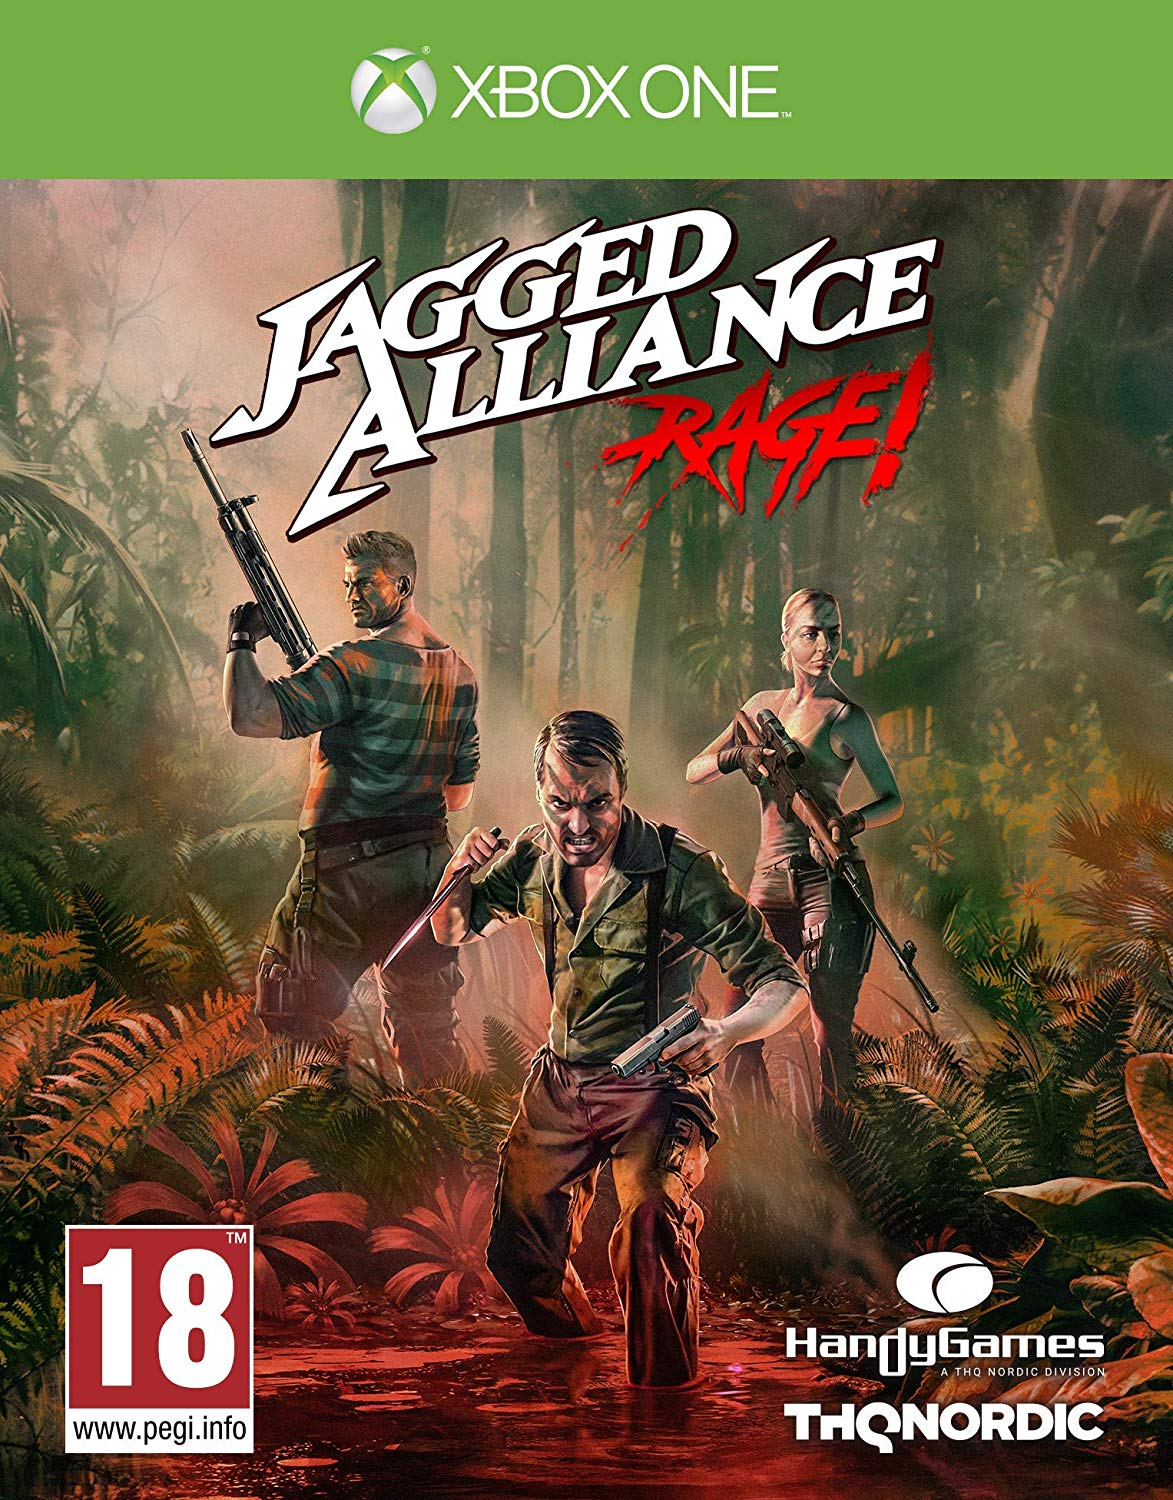 Jagged Alliance: Rage! (XONE)